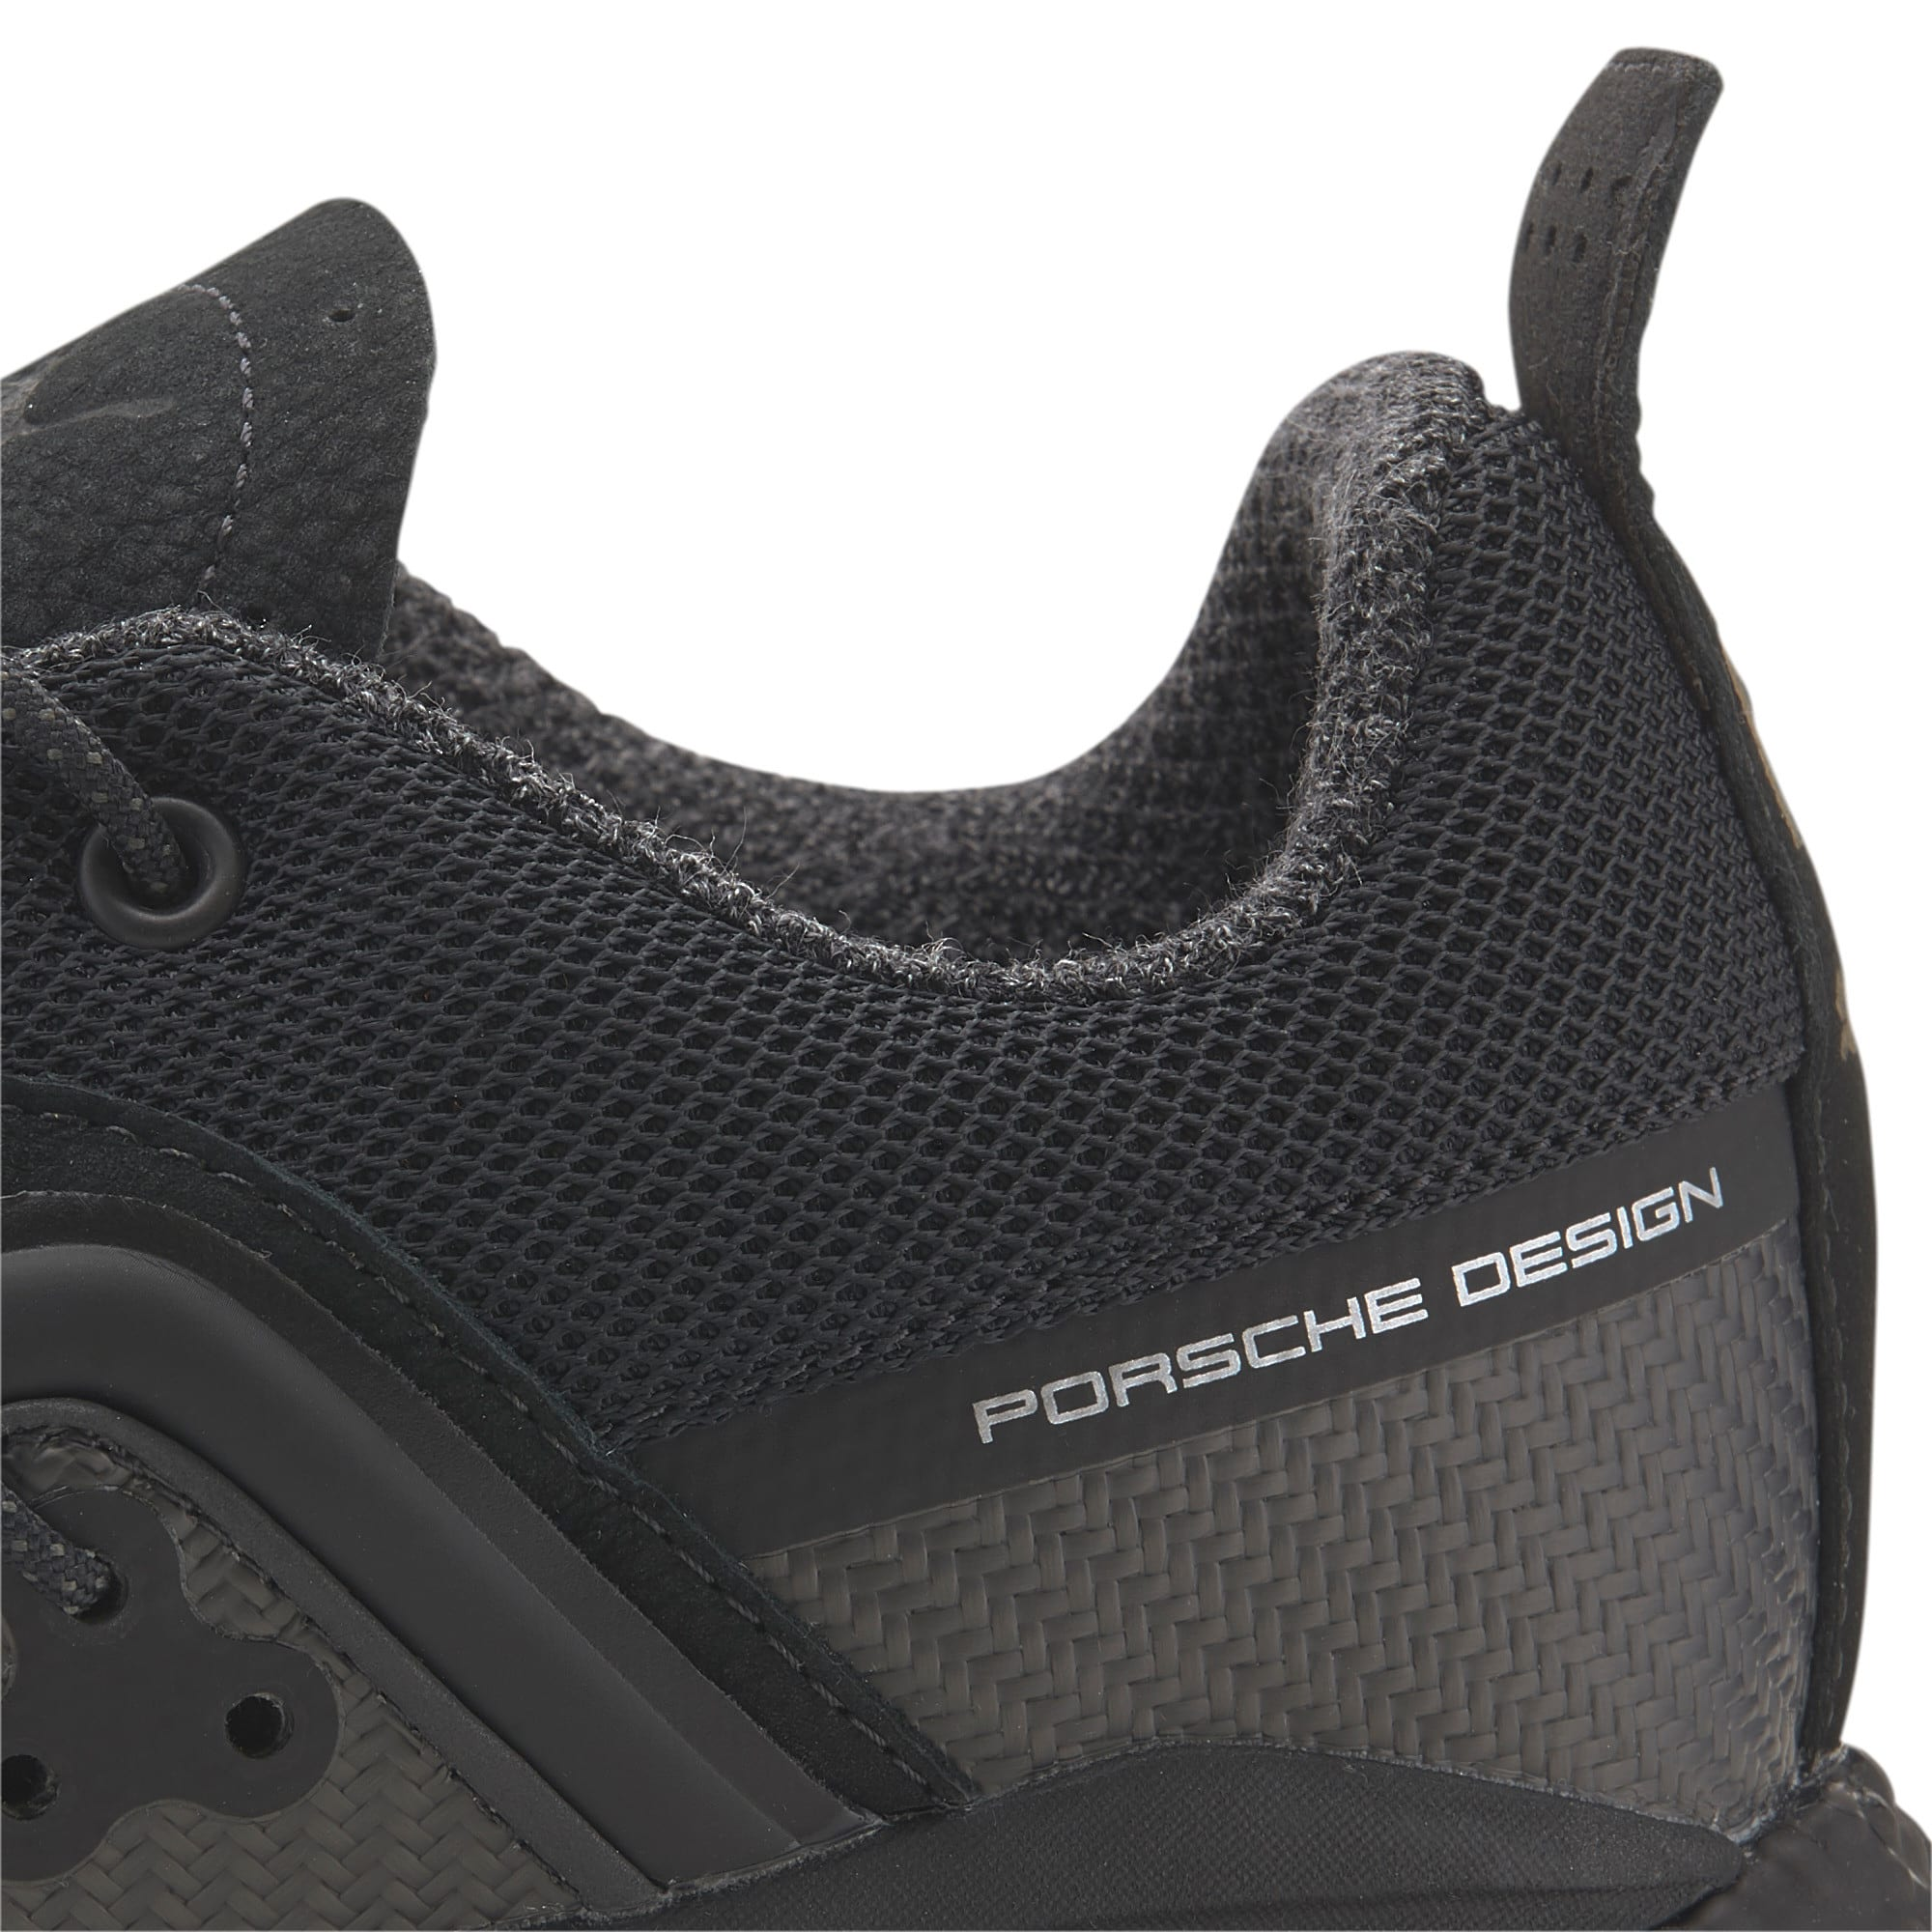 Thumbnail 8 of Porsche Design HYBRID Runner Herren Sneaker, Jet Black-Jet Black, medium